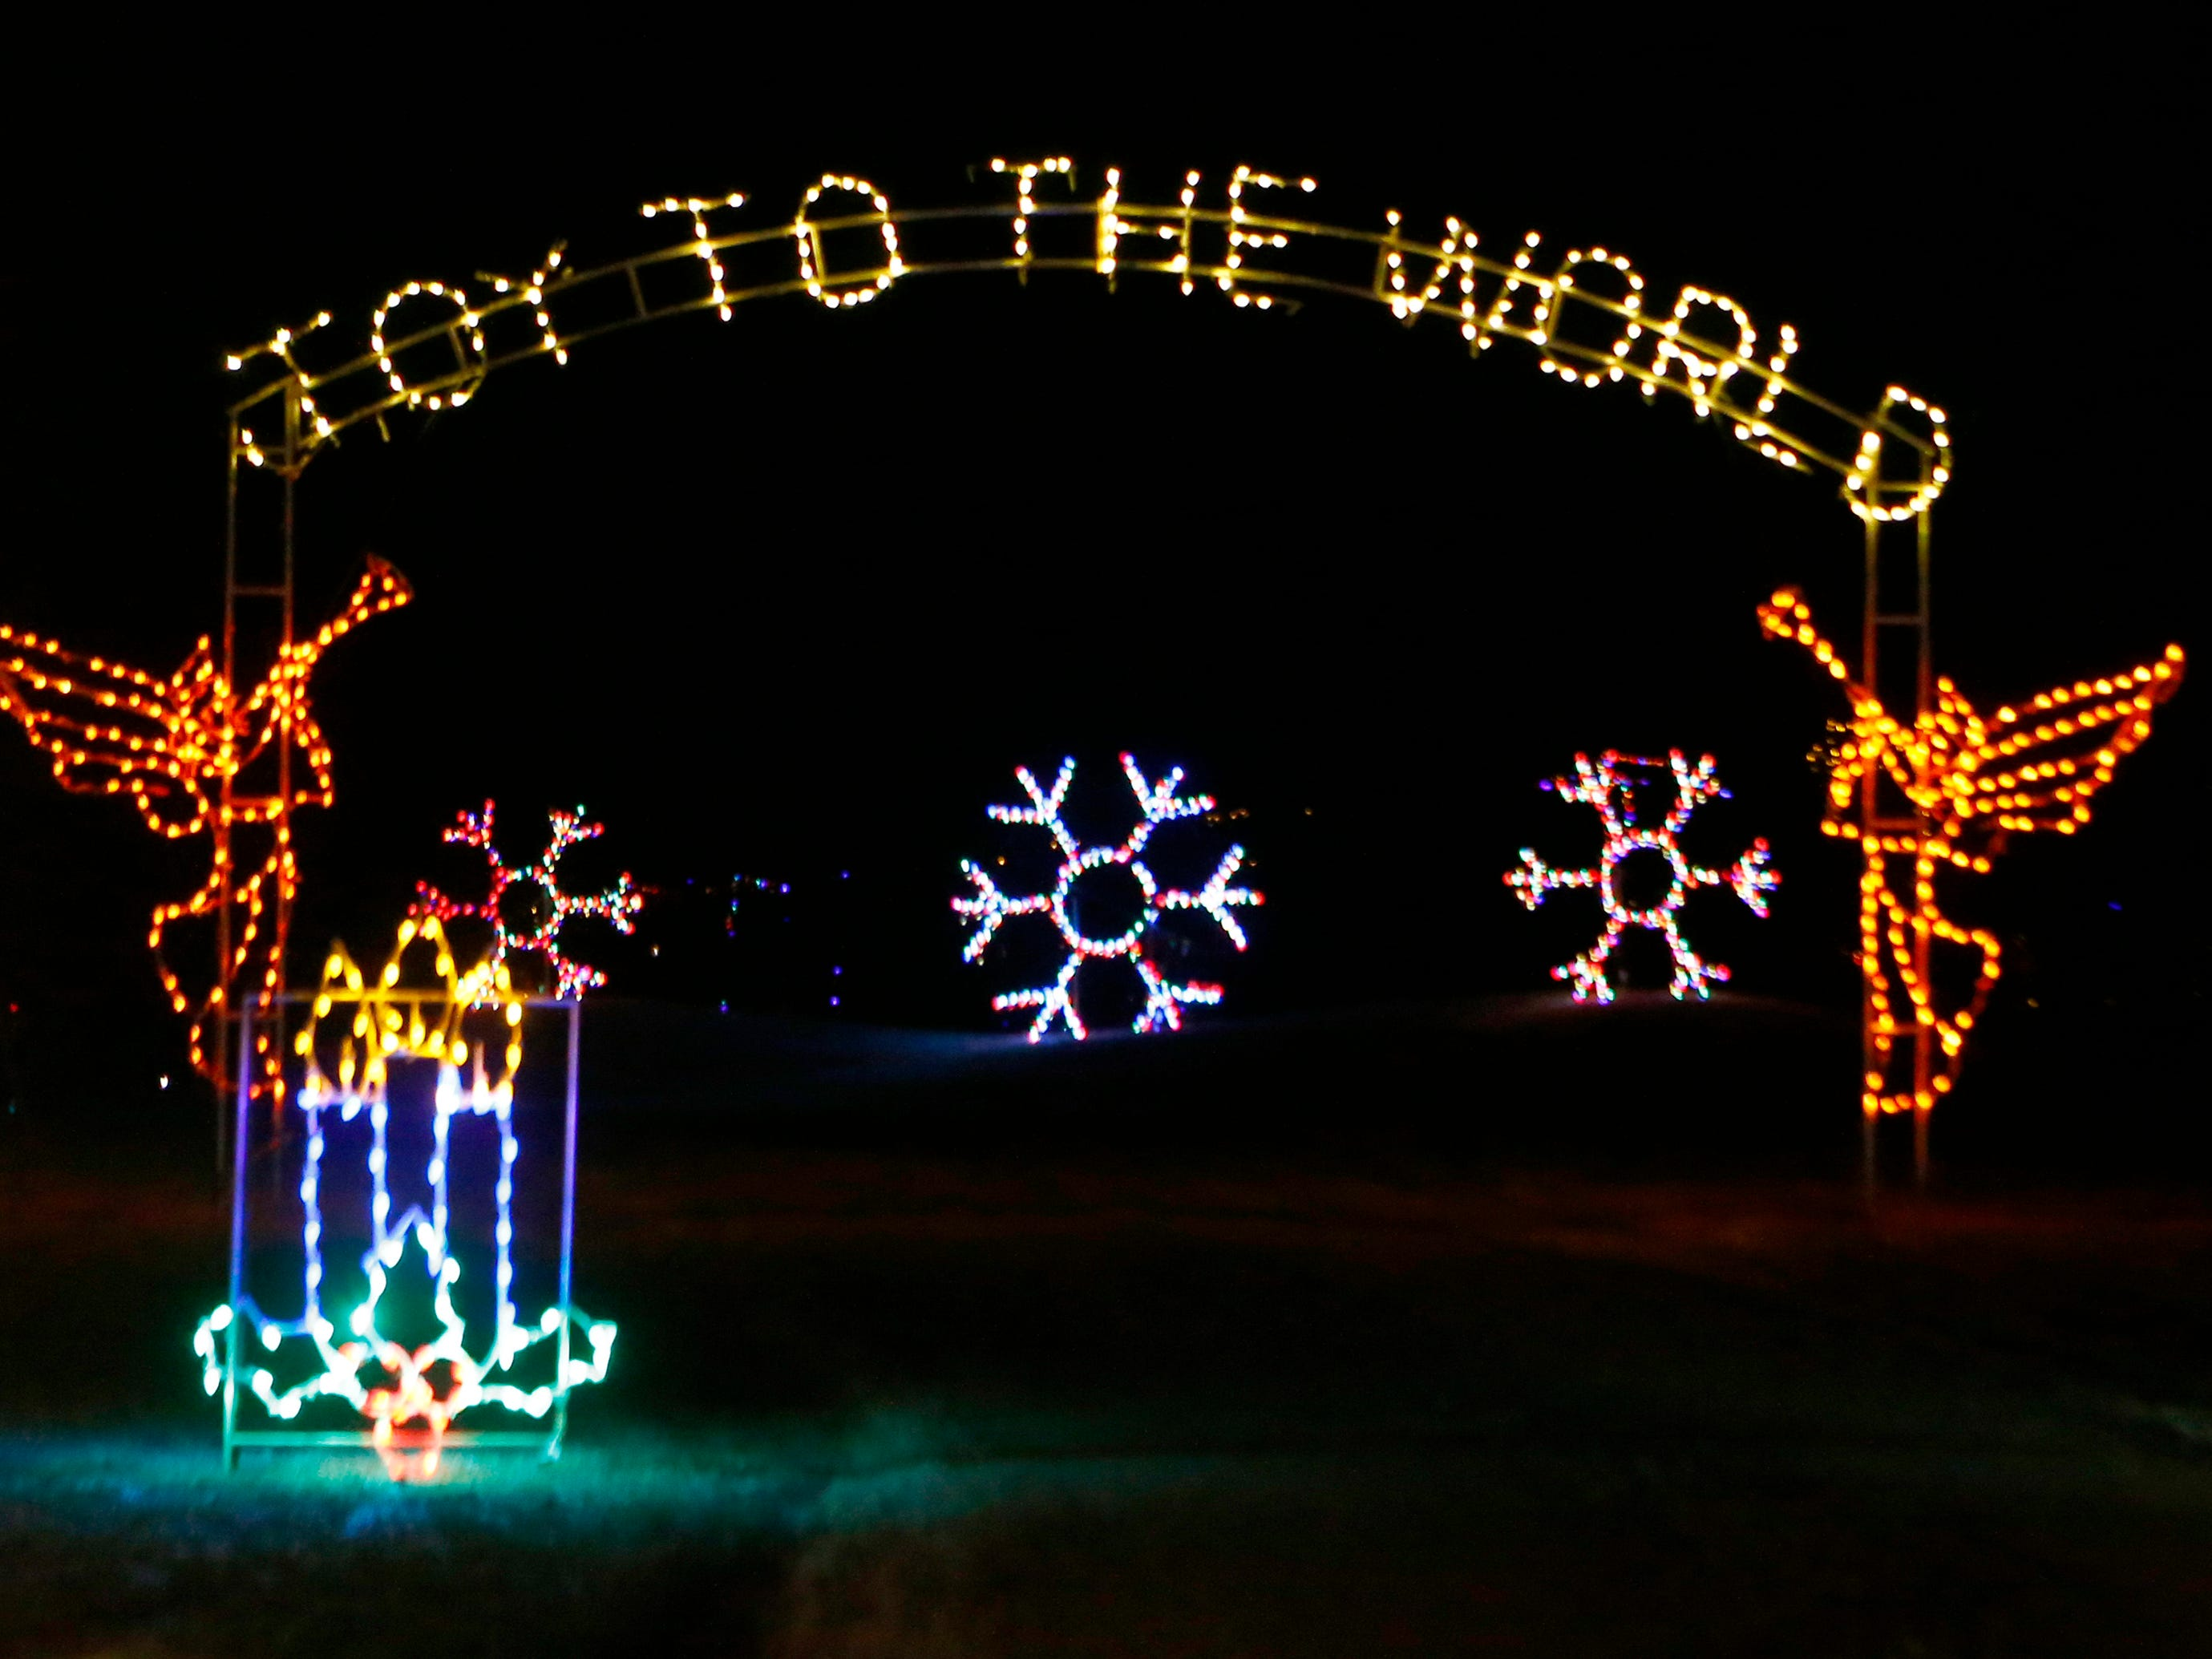 One of the scenes at the Country Christmas outdoor drive-through light display at the Ingleside Hotel in Pewaukee. The Country Christmas display is open 5 p.m. to 9 p.m. Sundays through Thursdays, and 5 p.m. to 10 p.m. Friday and Saturdays.